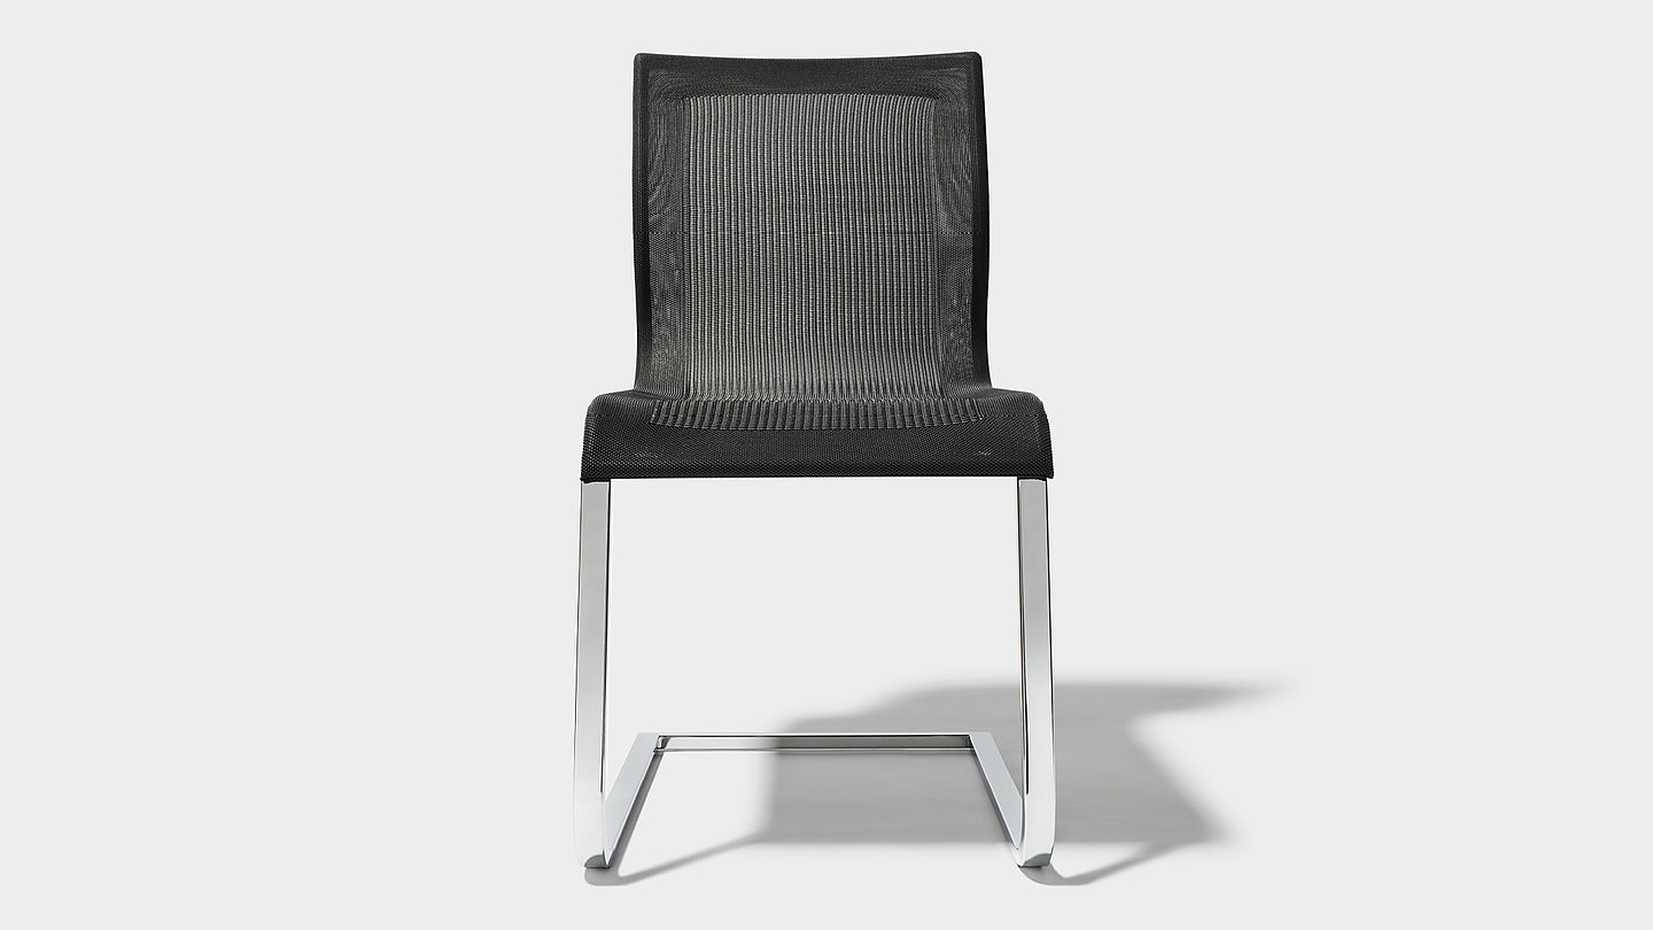 Magnum Stricktex Cantilever Chair by Team 7 product image 4